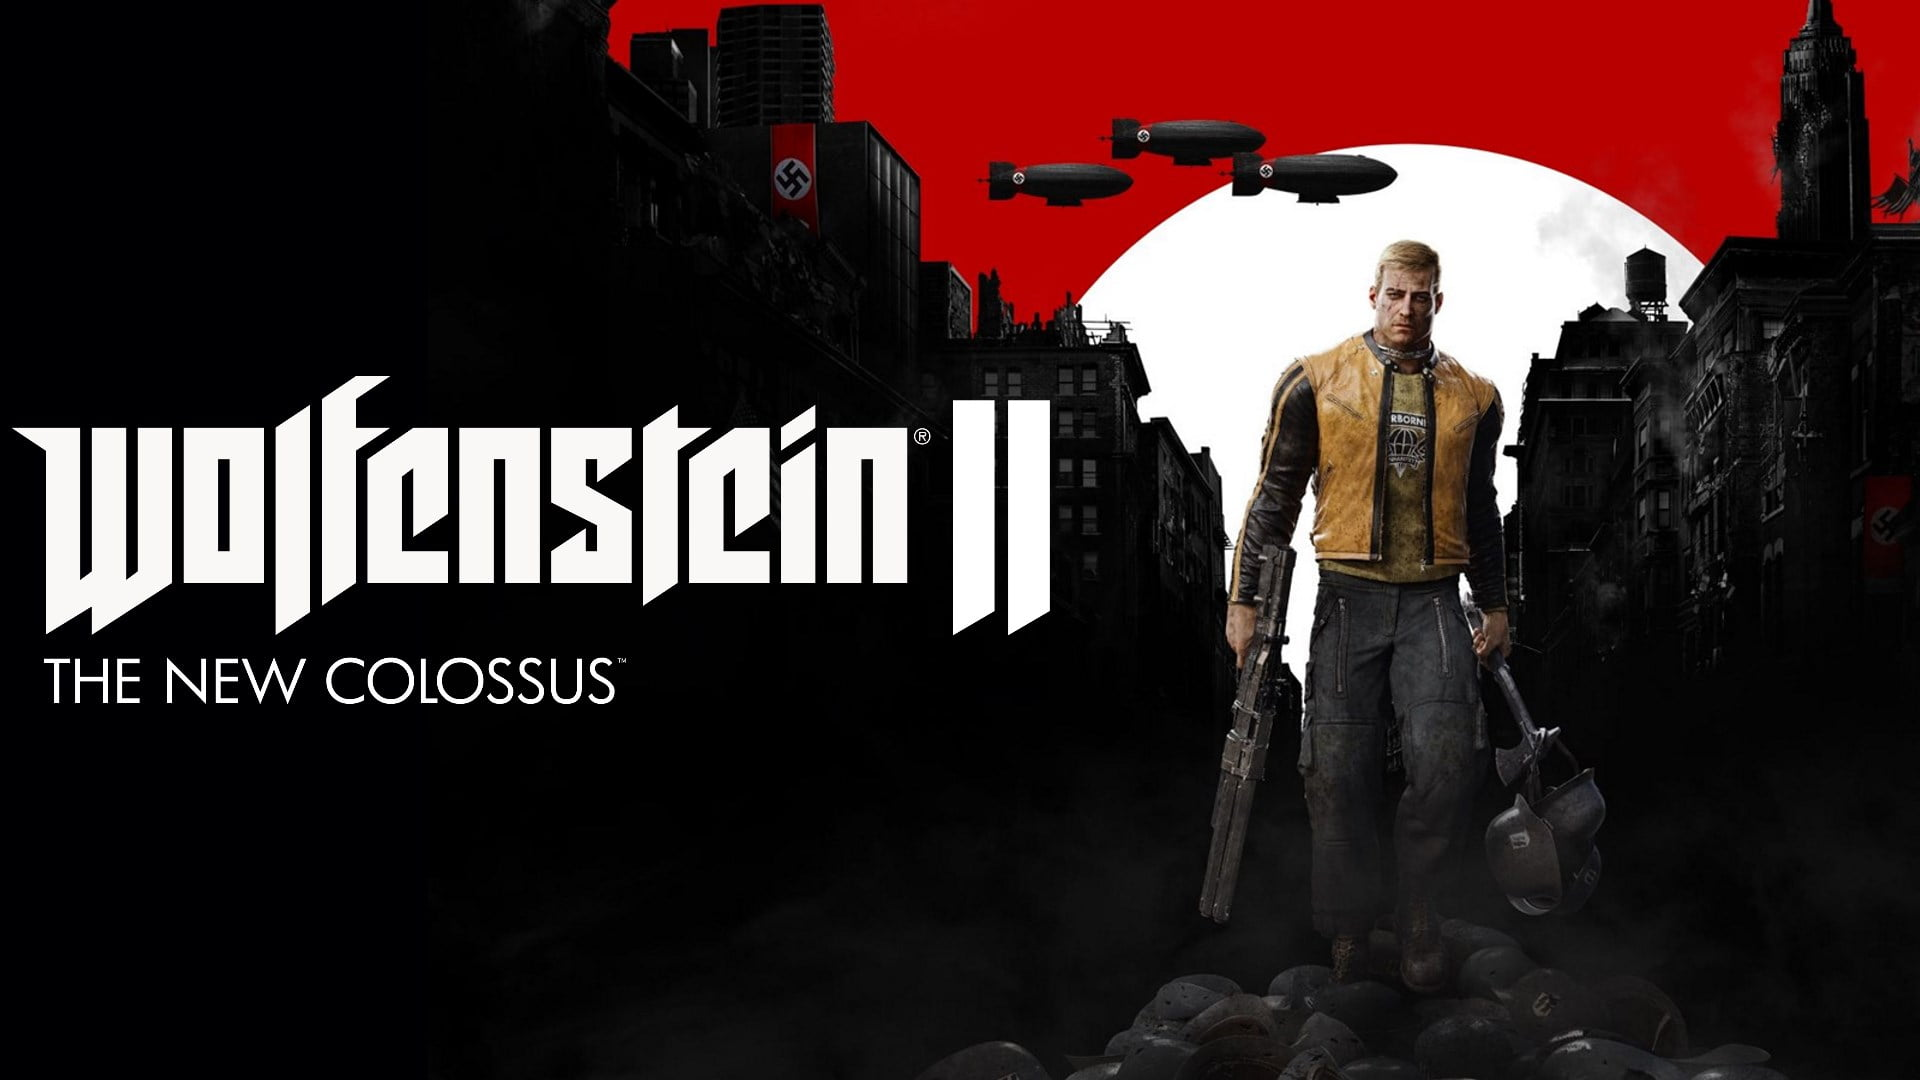 Wolfenstein II 2: The New Colossus CD Key PC Game For Free Download